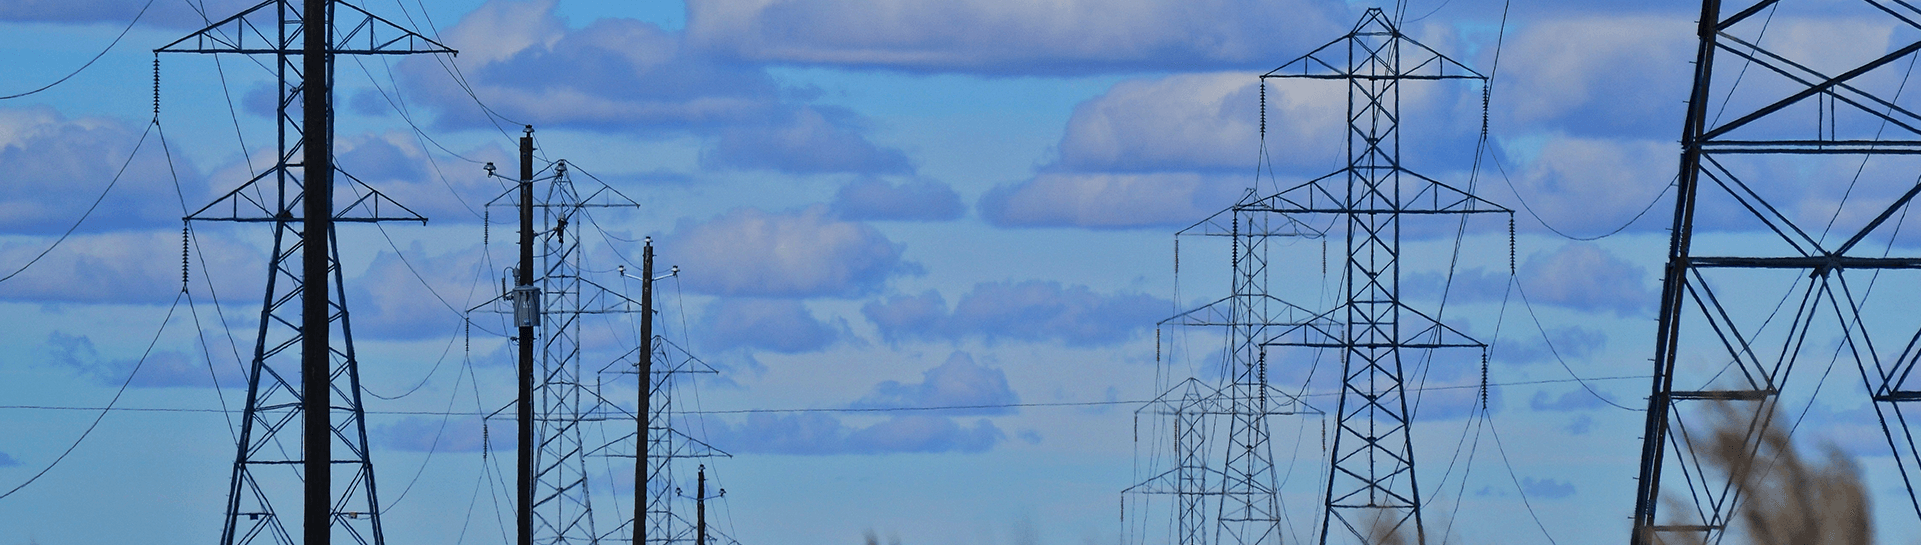 Rows of power lines under a blue sky - Tulane School of Professional Advancement